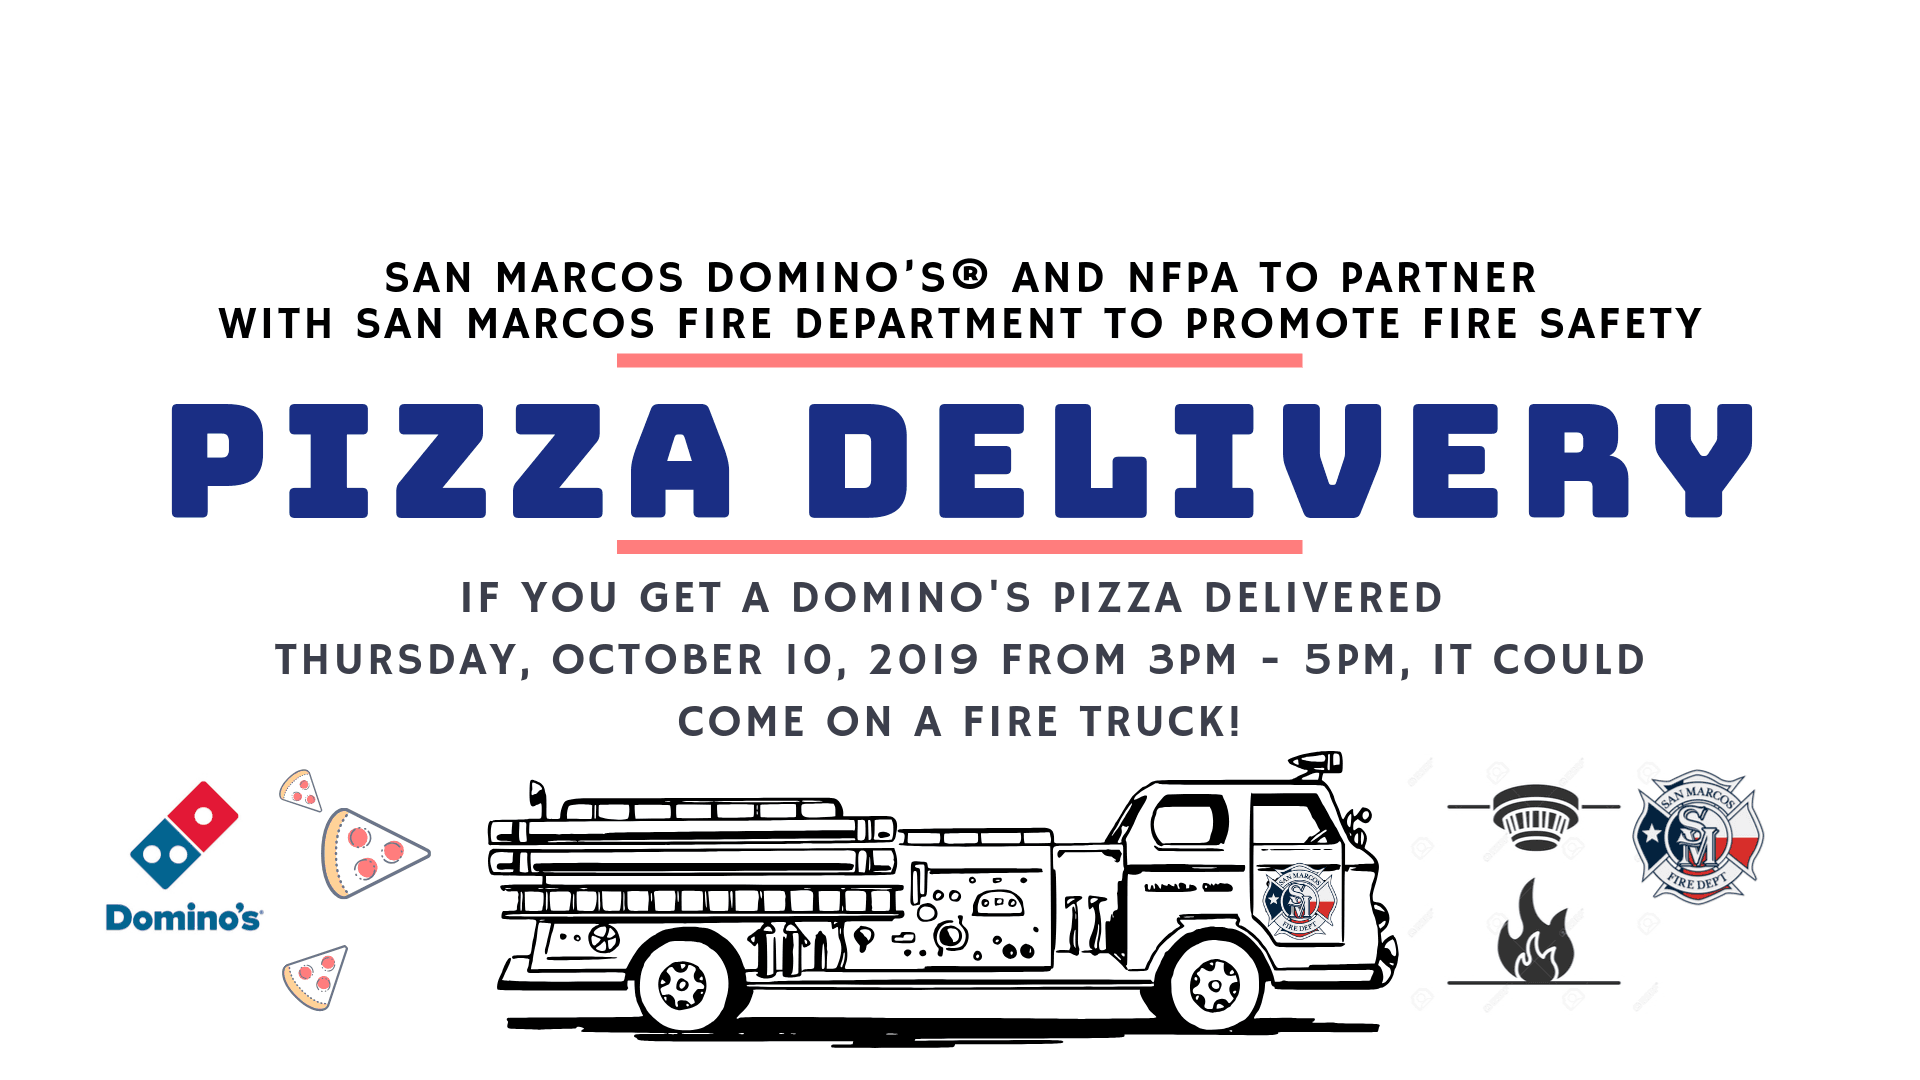 10-10-19 Dominos Pizza SMFD Delivery